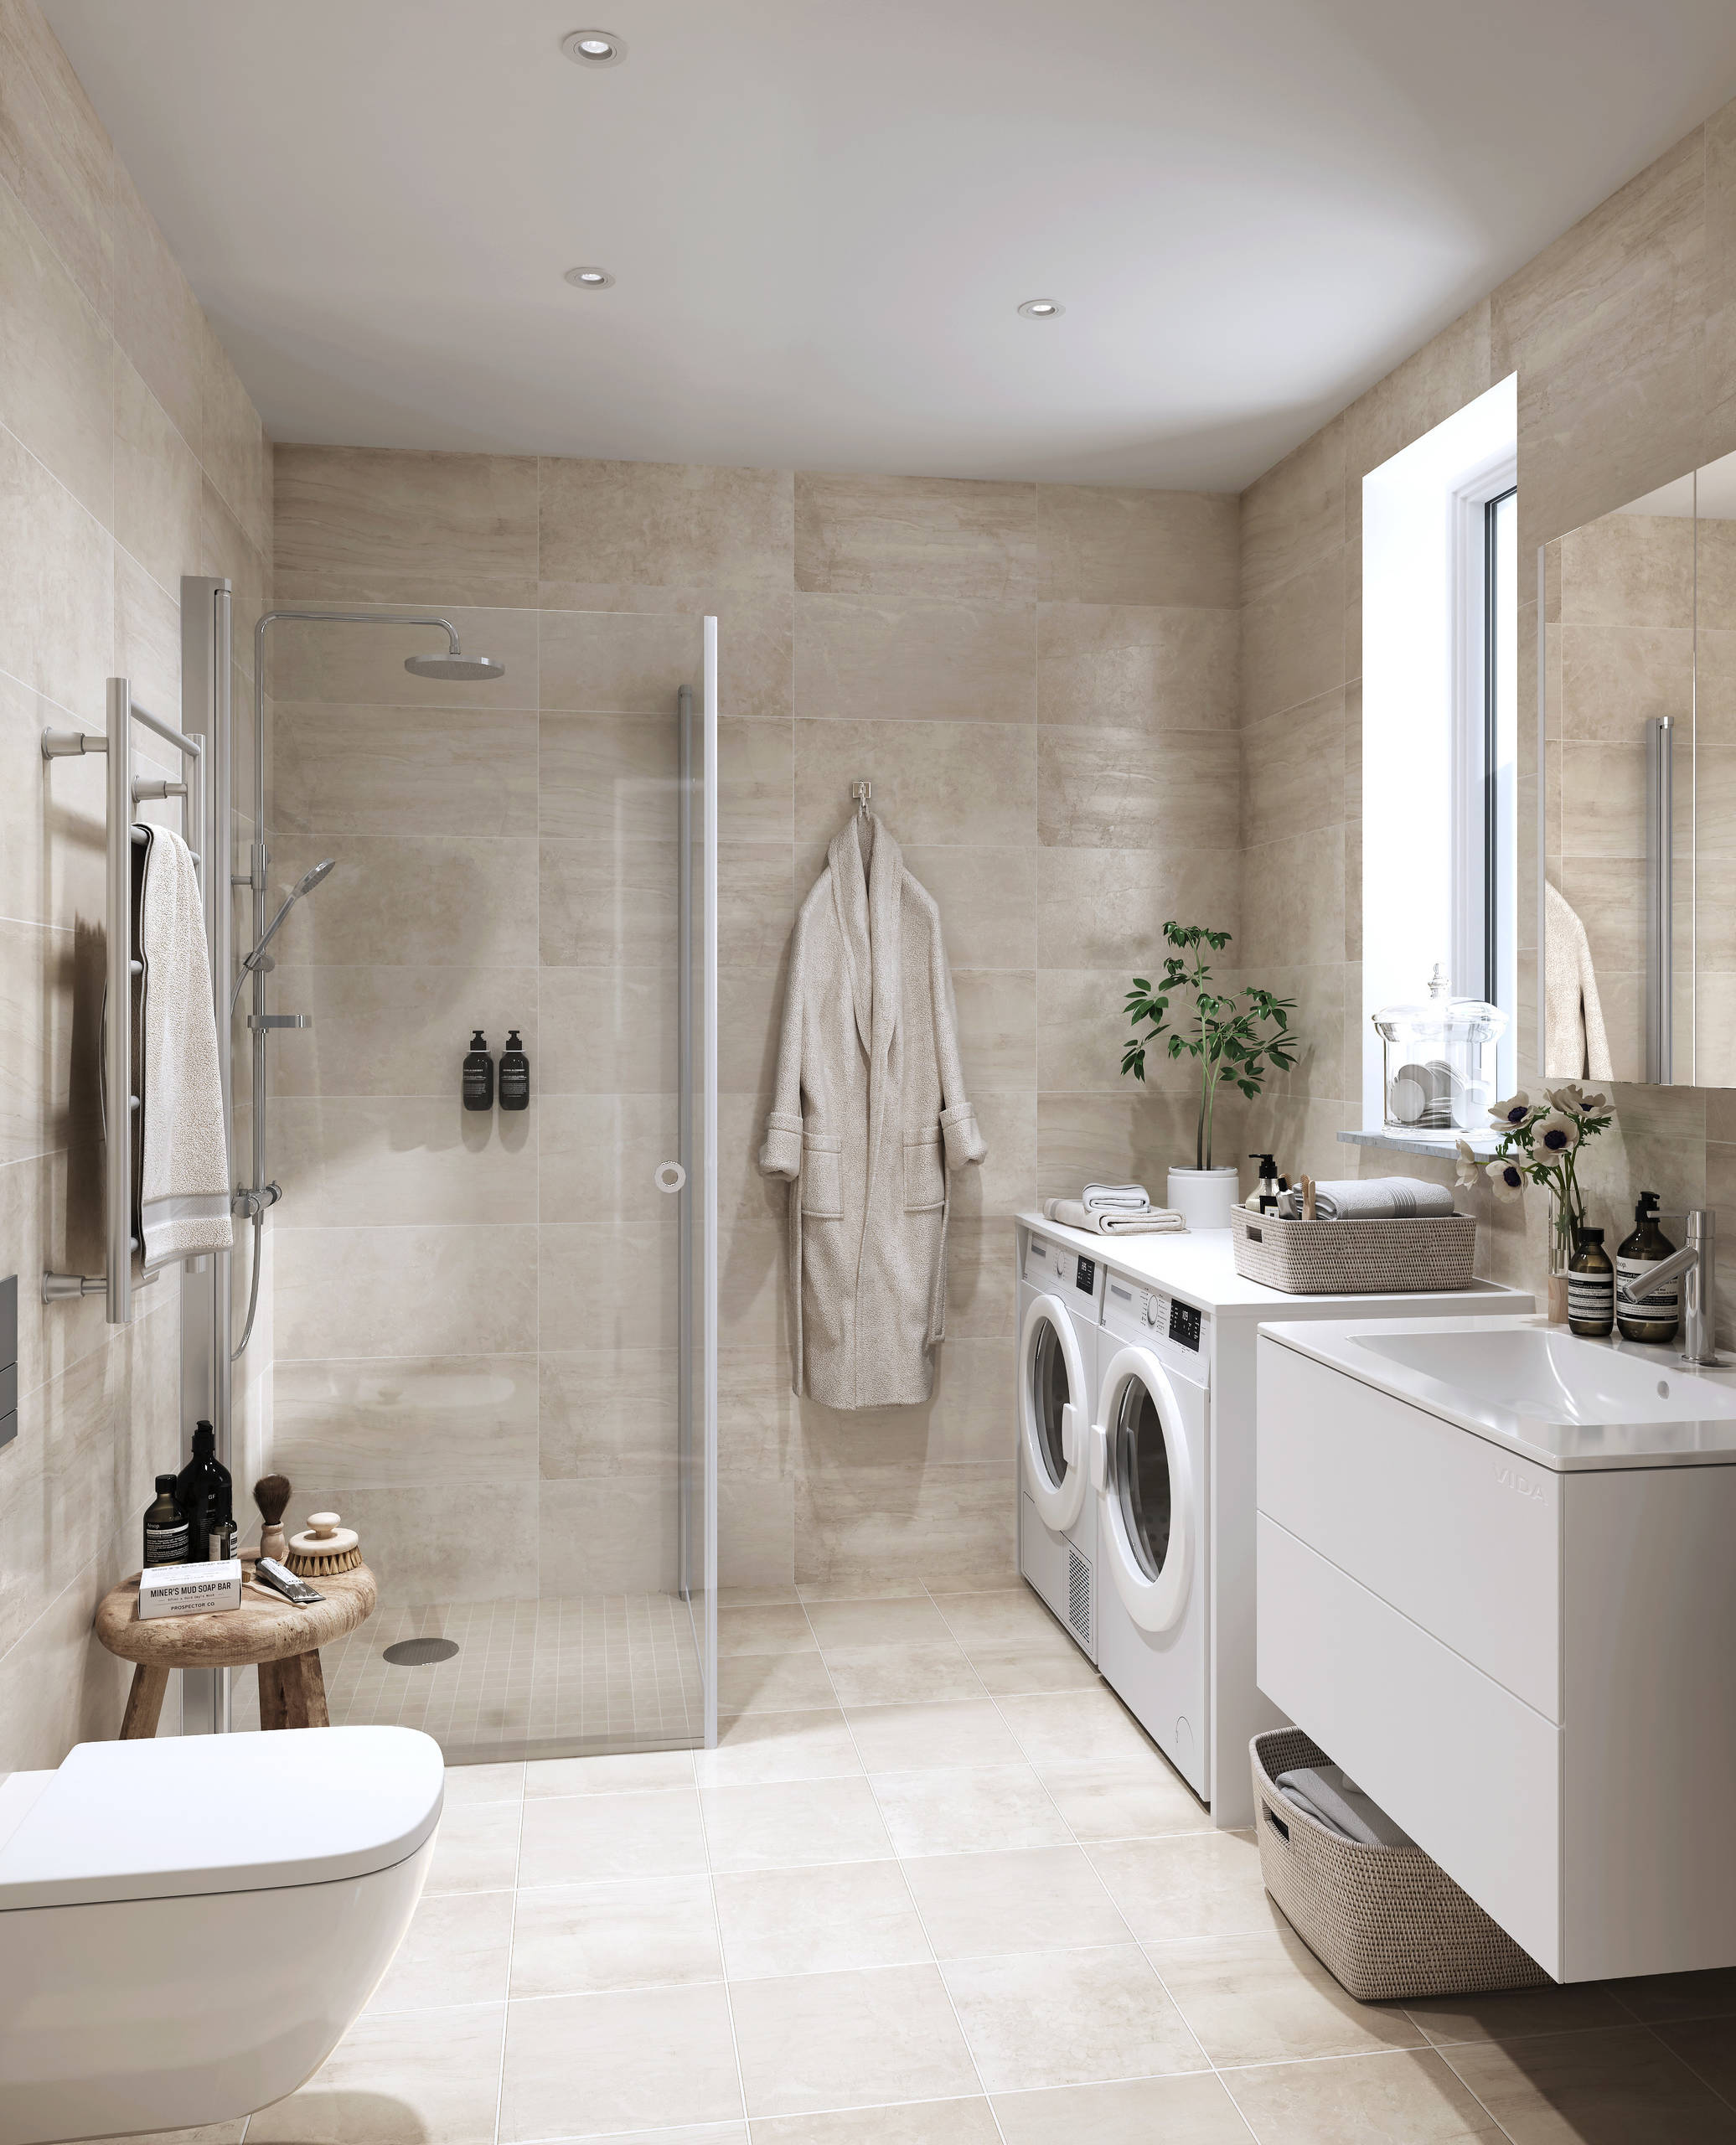 75 Beautiful Bathroom Laundry Room Pictures Ideas November 2020 Houzz